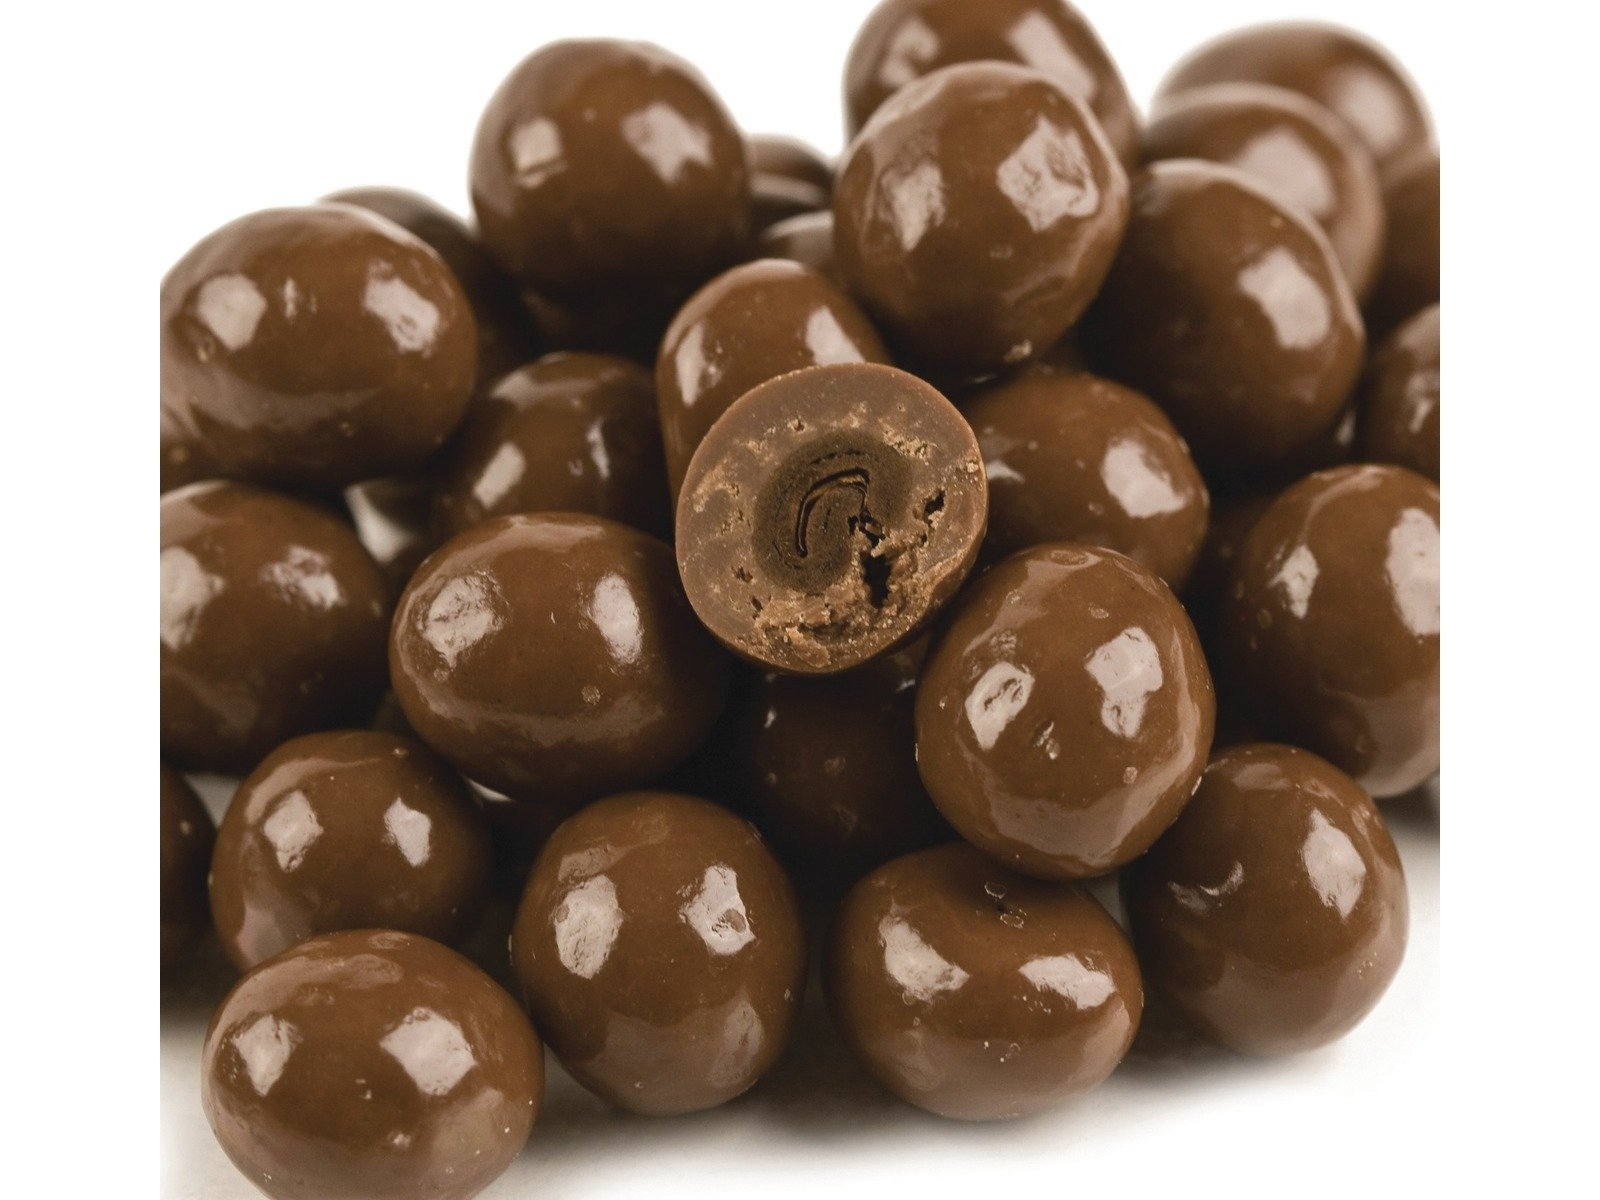 Milk Chocolate covered Coffee Beans 5 pounds by GRANOLA KITCHEN